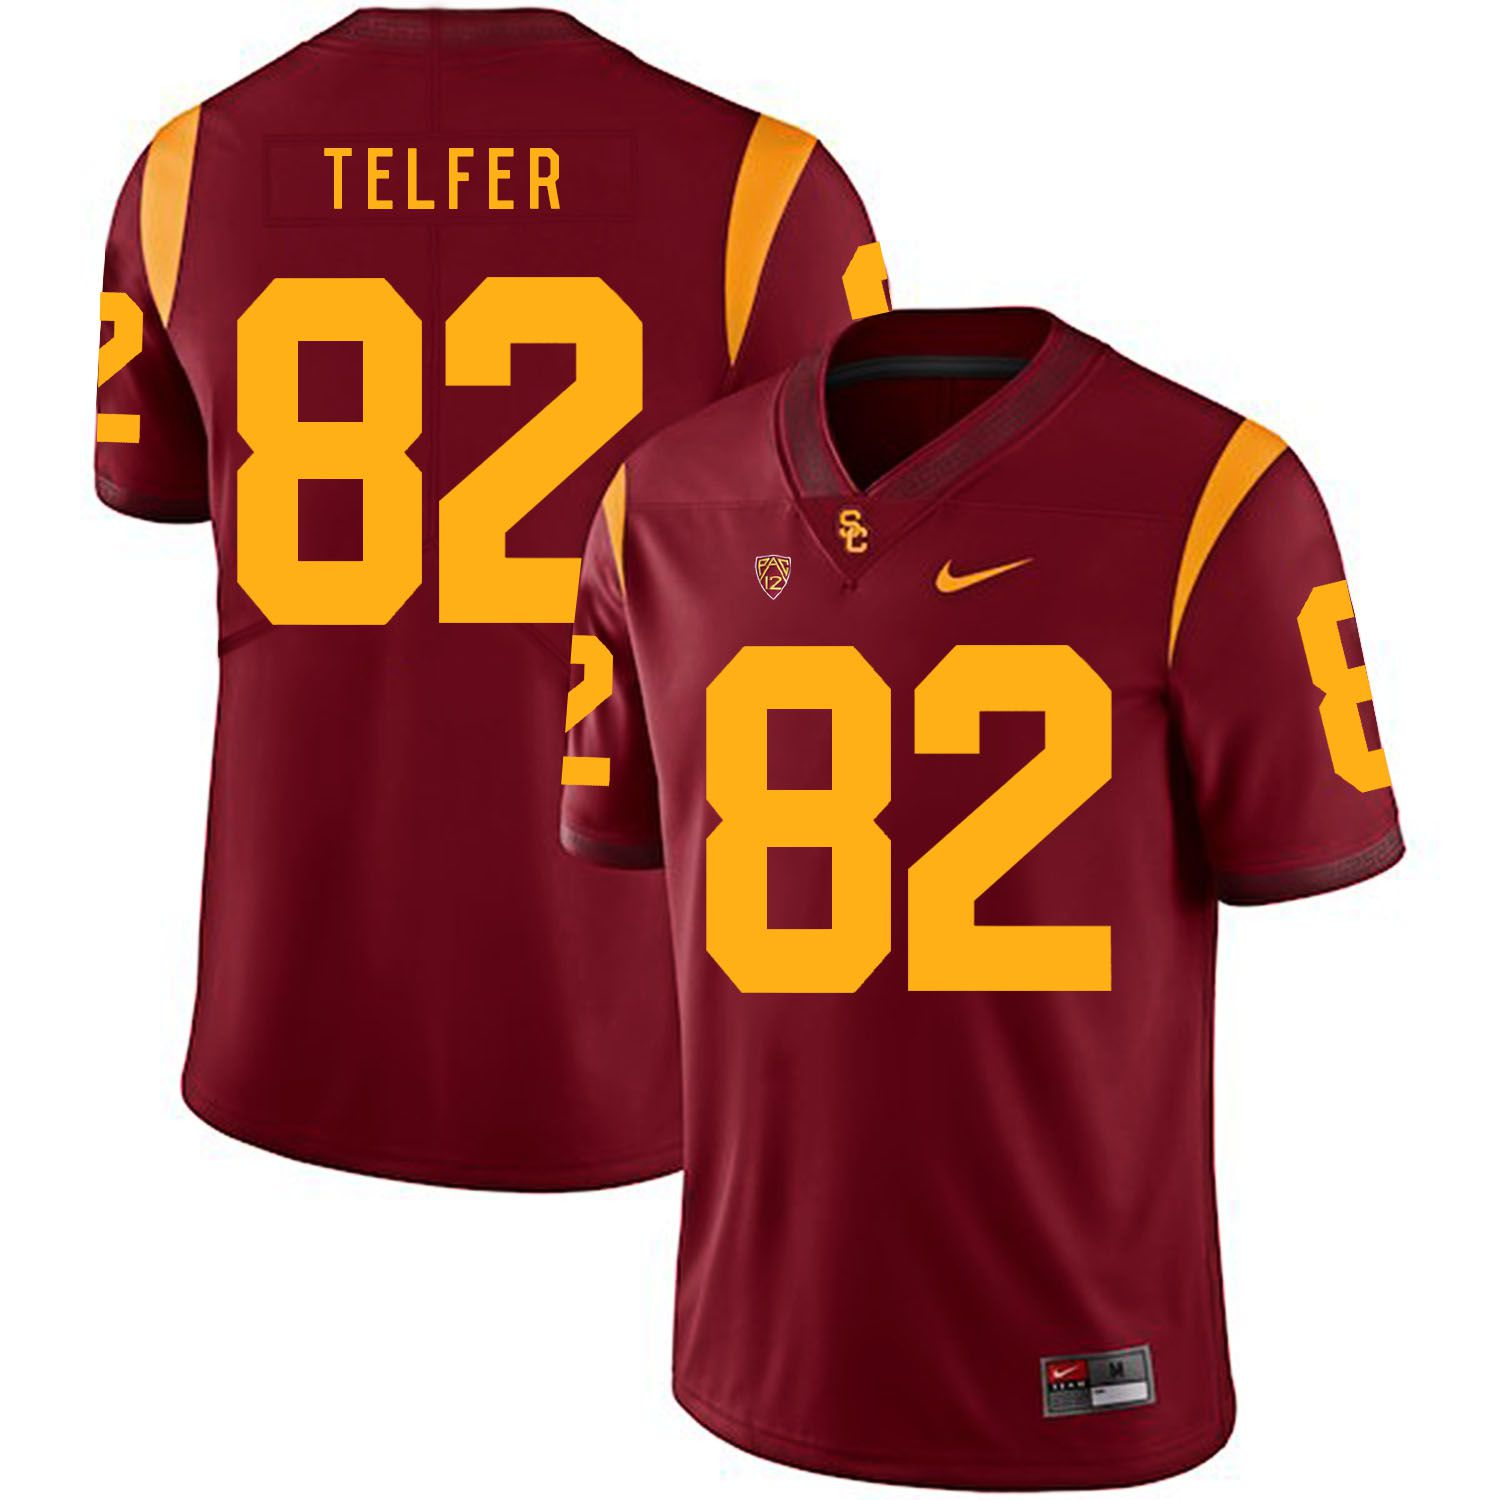 Men USC Trojans 82 Telfer Red Customized NCAA Jerseys